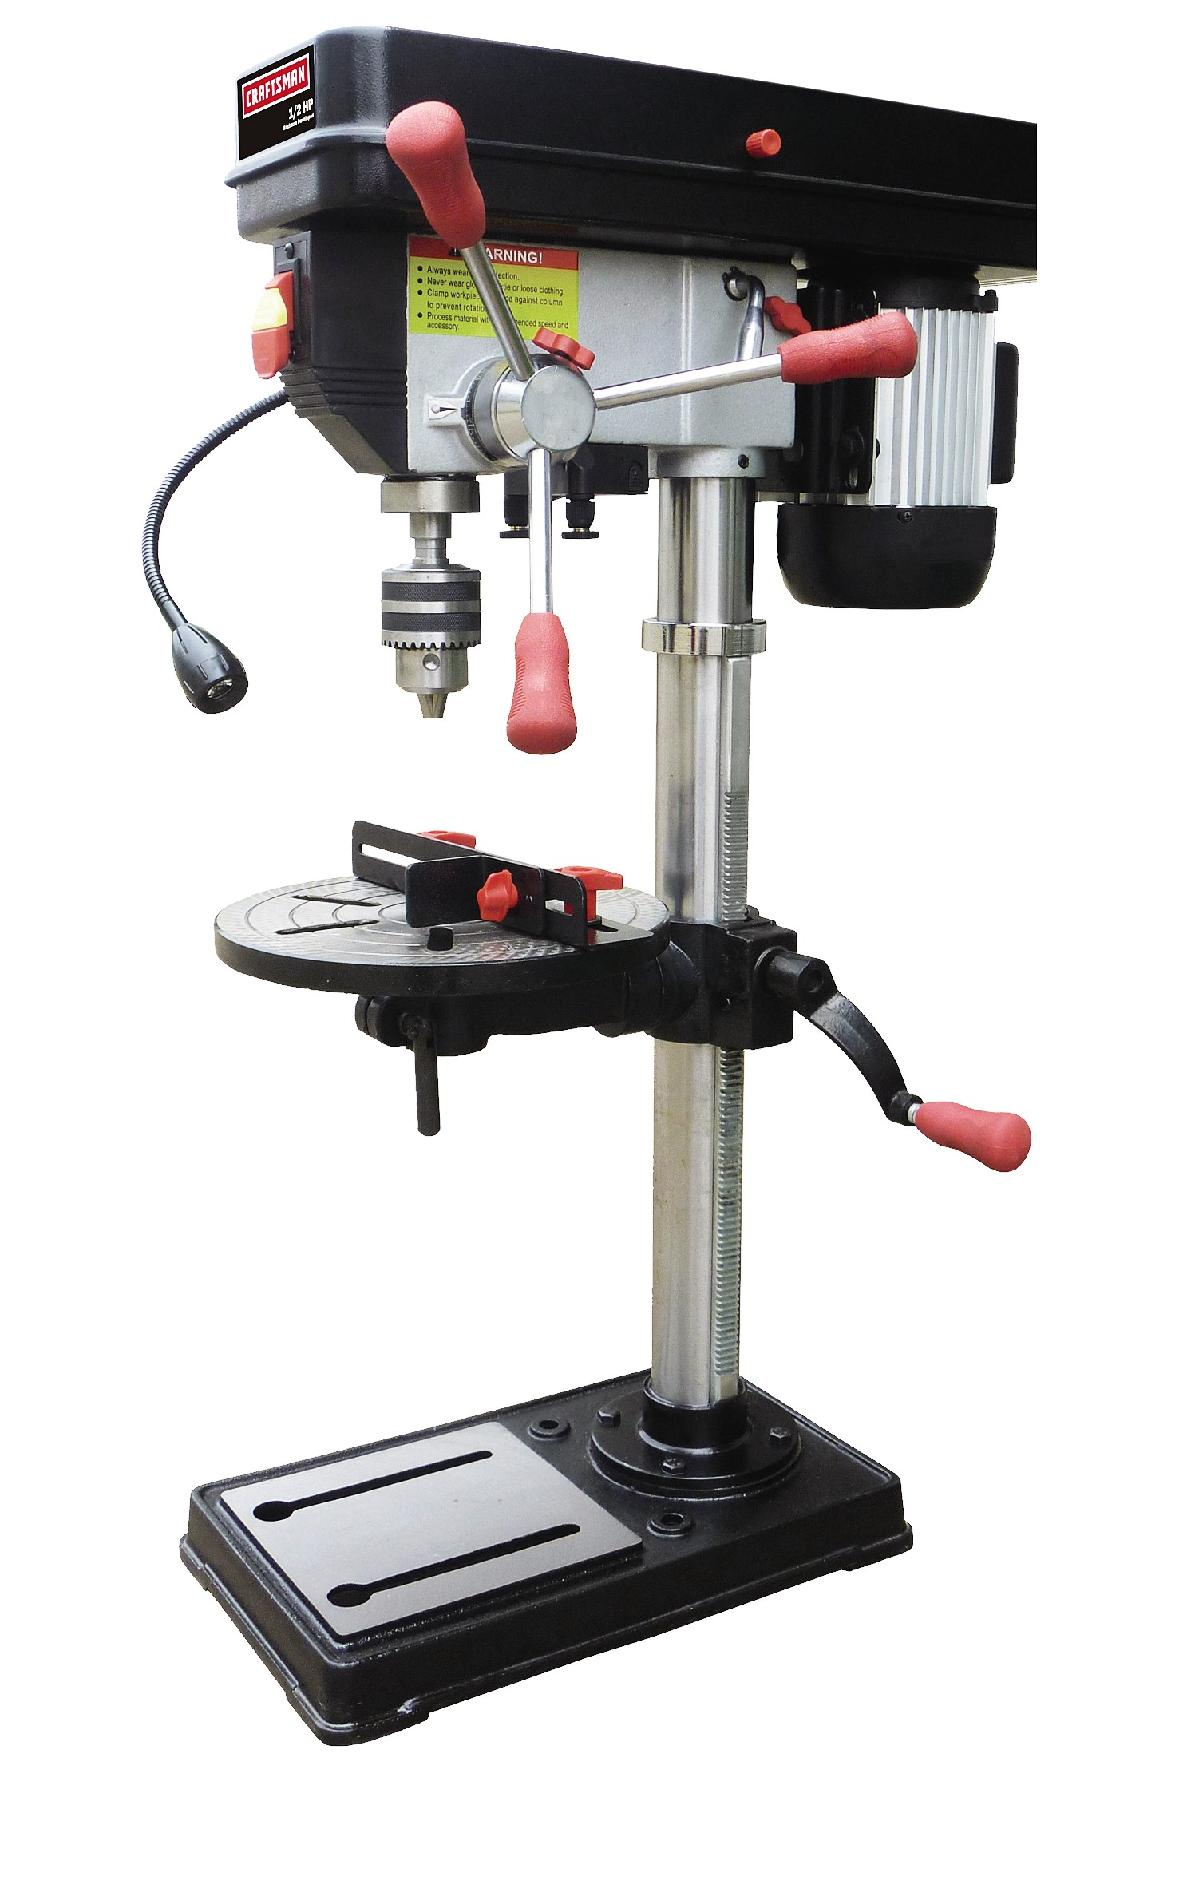 """Craftsman 12"""" Drill Press with Laser and LED Light"""